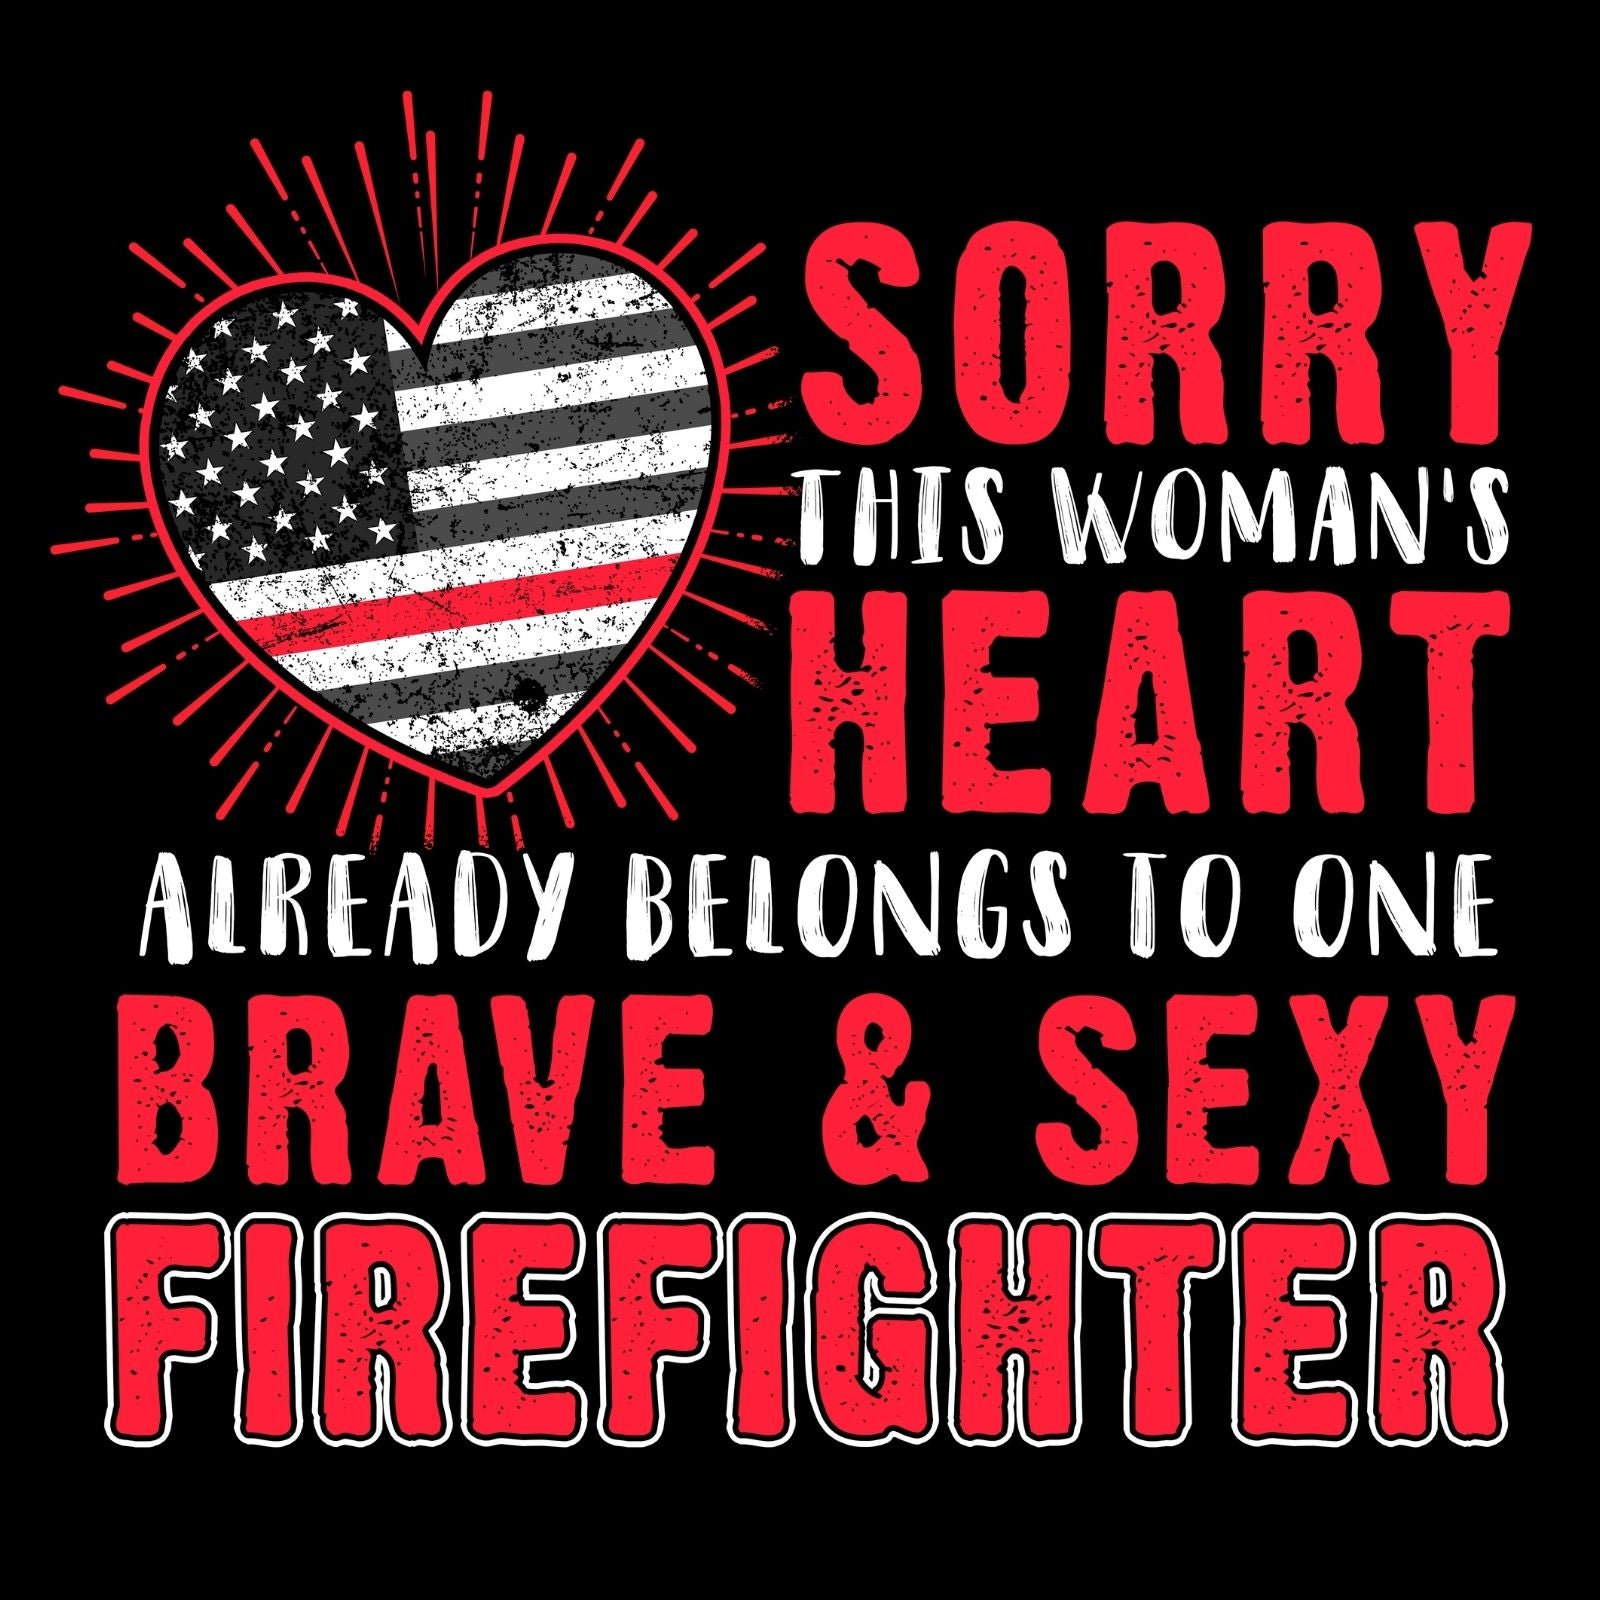 Sorry This Woman's Heart Already Belong To One Brave & Sexy Firefighter - Bastard Graphics